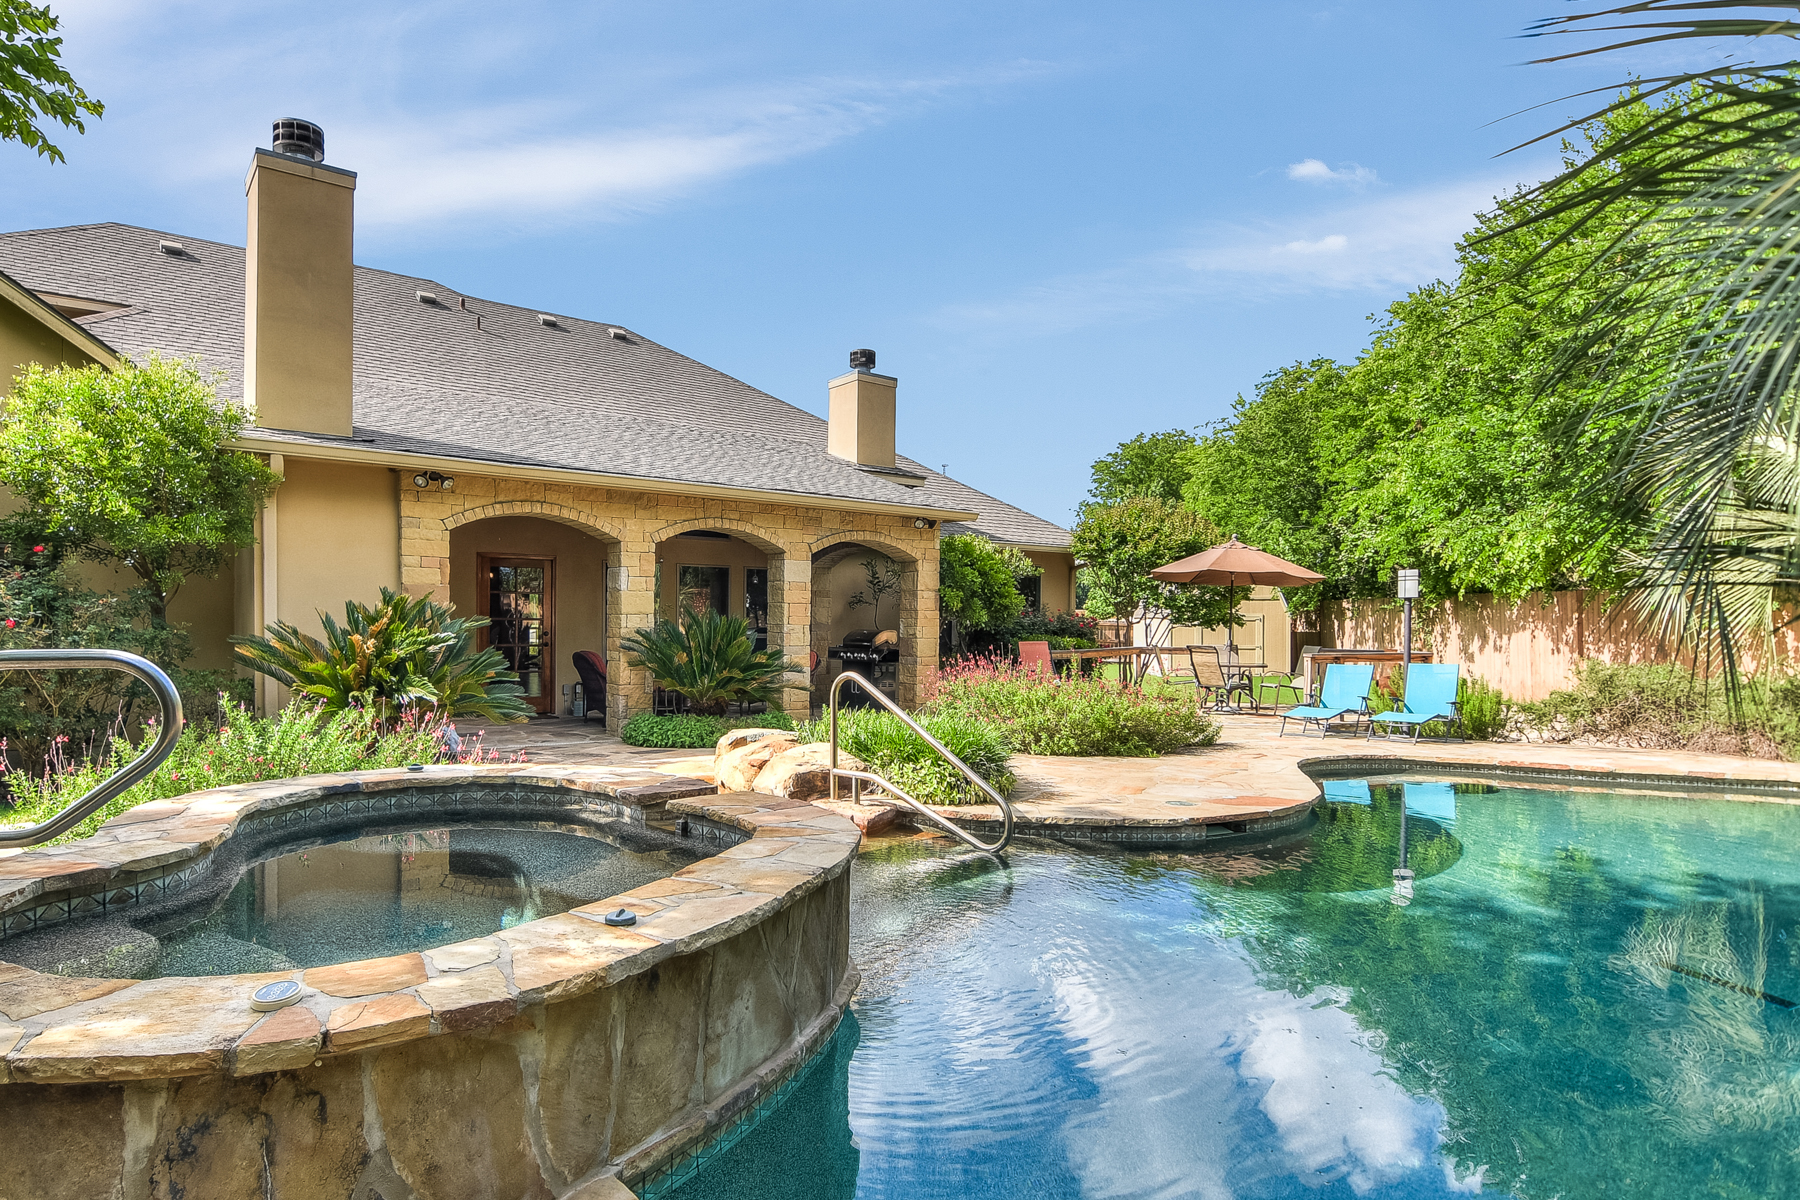 Single Family Home for Sale at Beautiful Custom Home in English Oaks 320 English Oaks Dr Boerne, Texas 78006 United States